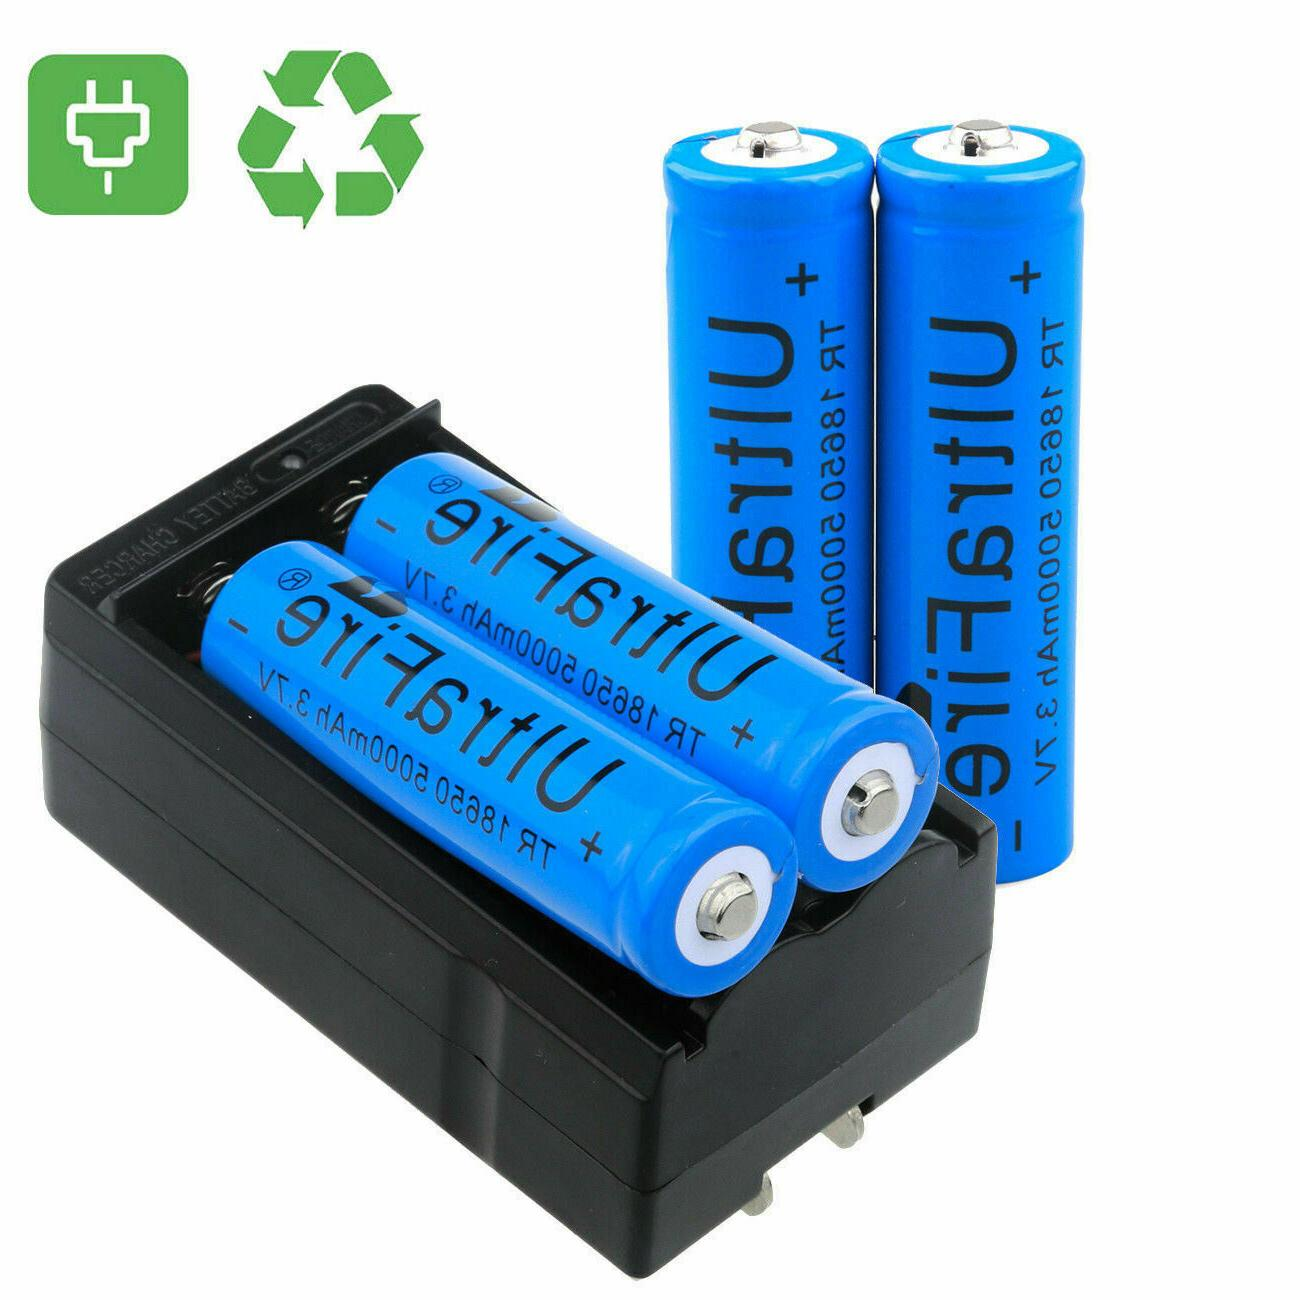 UltraFire 18650 5000mAh Li-ion Rechargeable For LED Flashlight